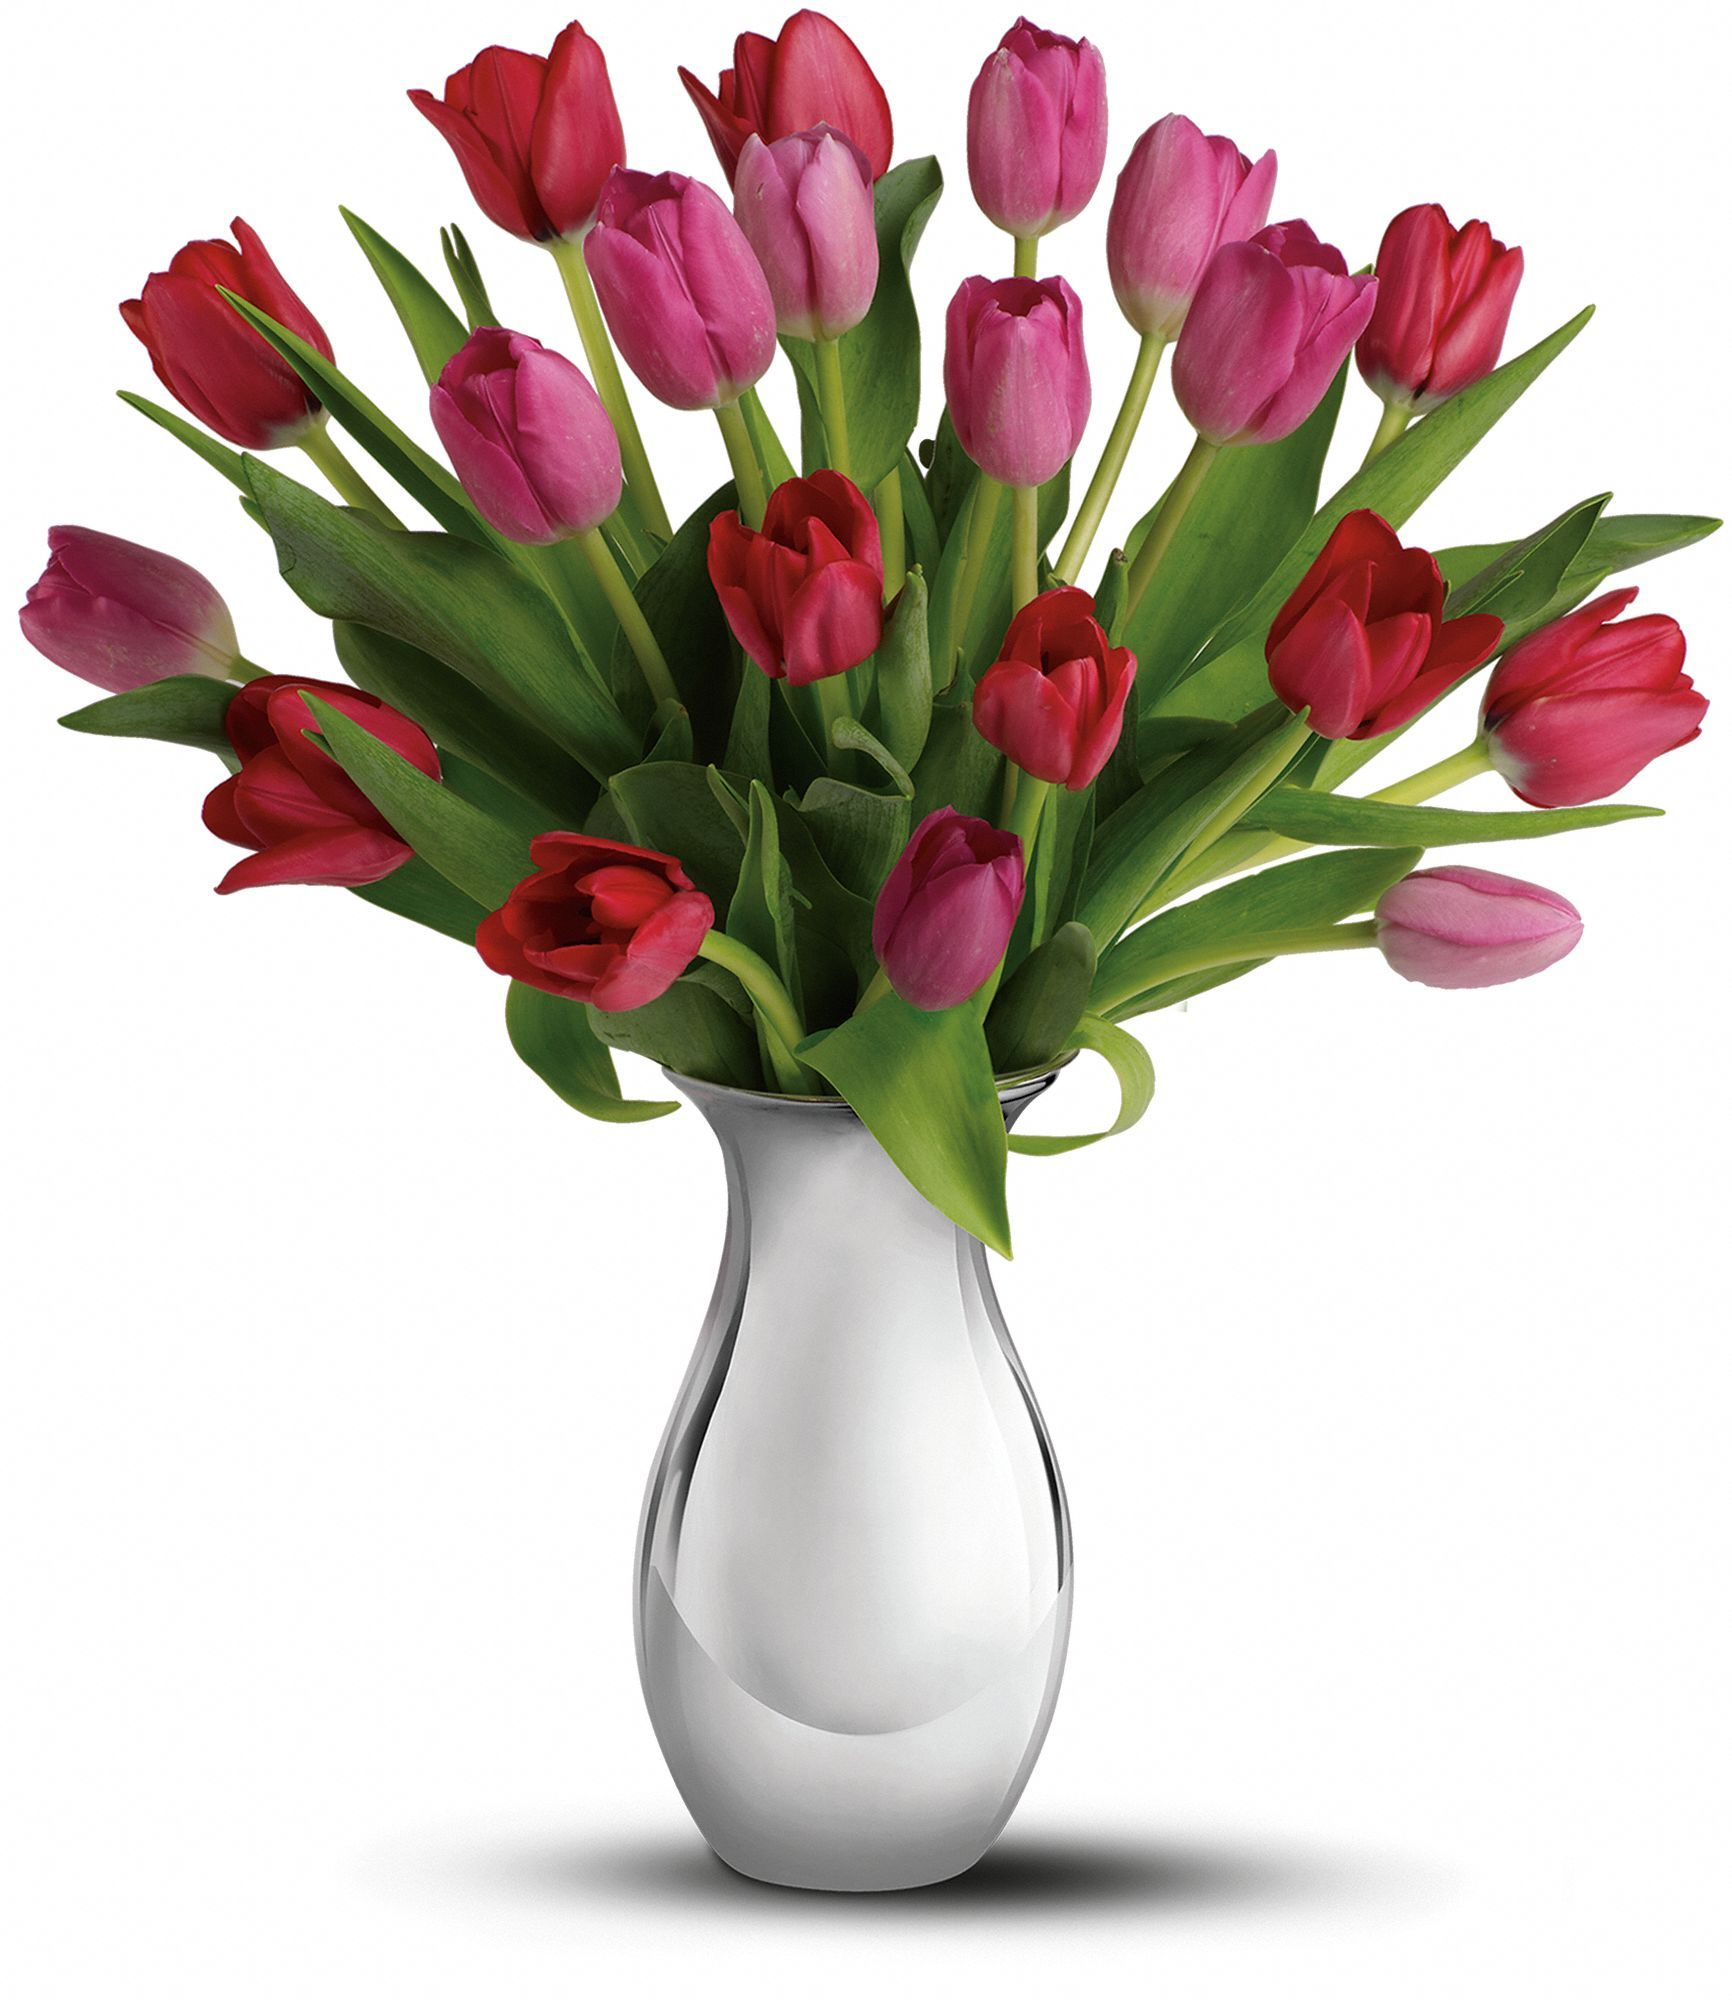 Pink And Red Tulips Mean Perfect Love Today Send Her Your Love With Sweet Surrender Bouquet Valentines Flowers Fresh Flower Bouquets Flower Arrangements